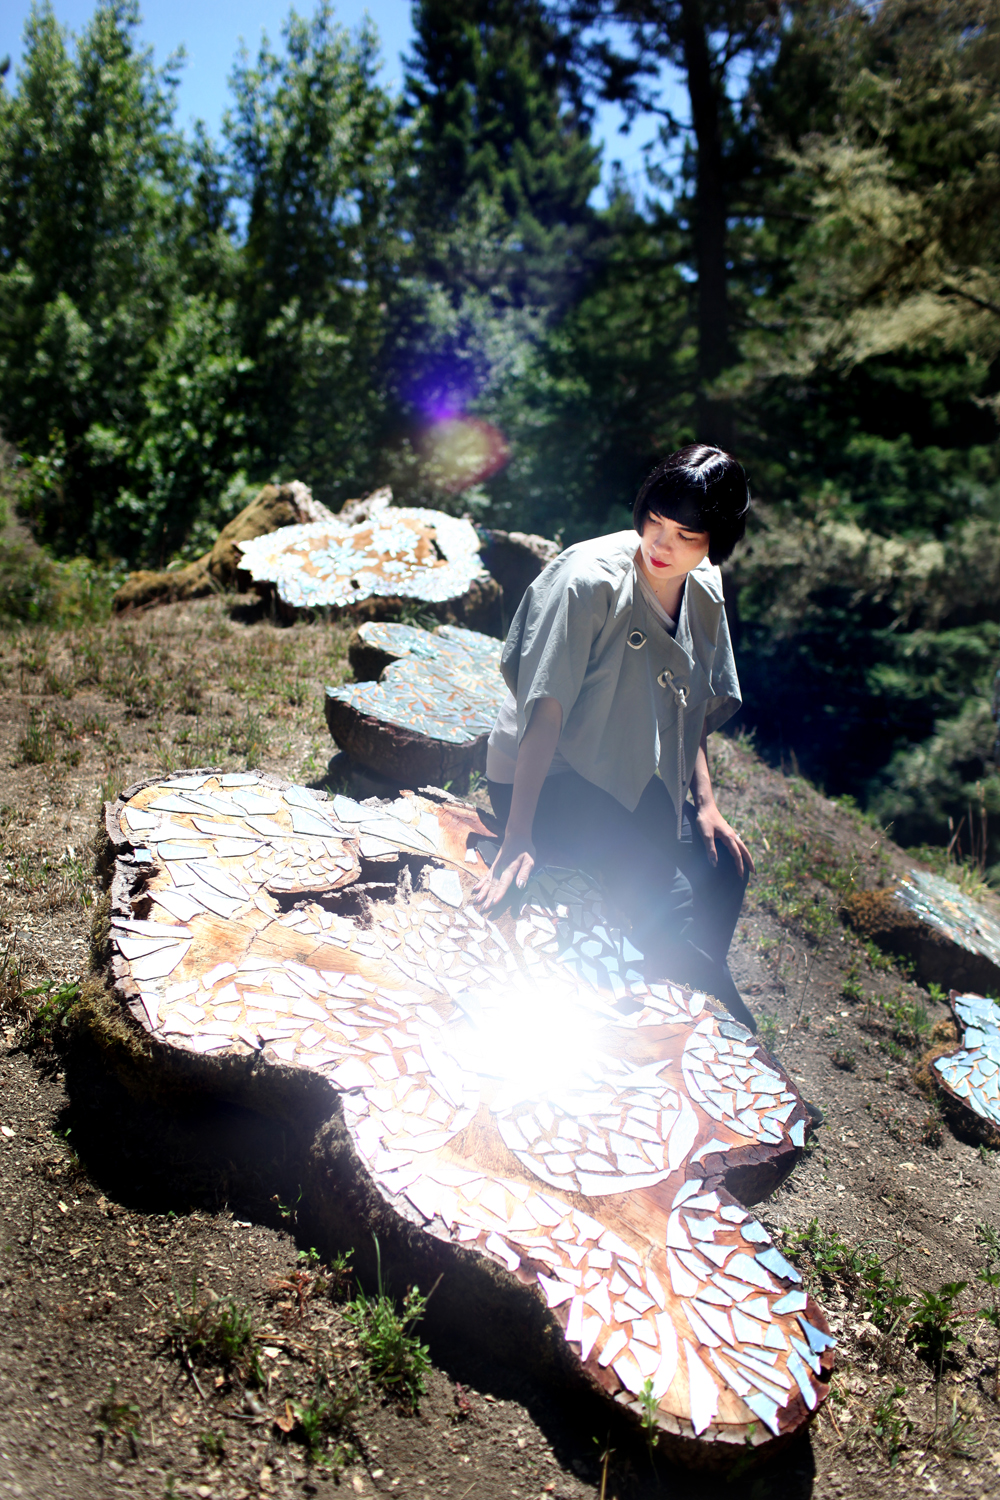 Artist Drue Kataoka with her piece After the Celestial Axe, at Djerassi in Woodside, July 12, 2013.